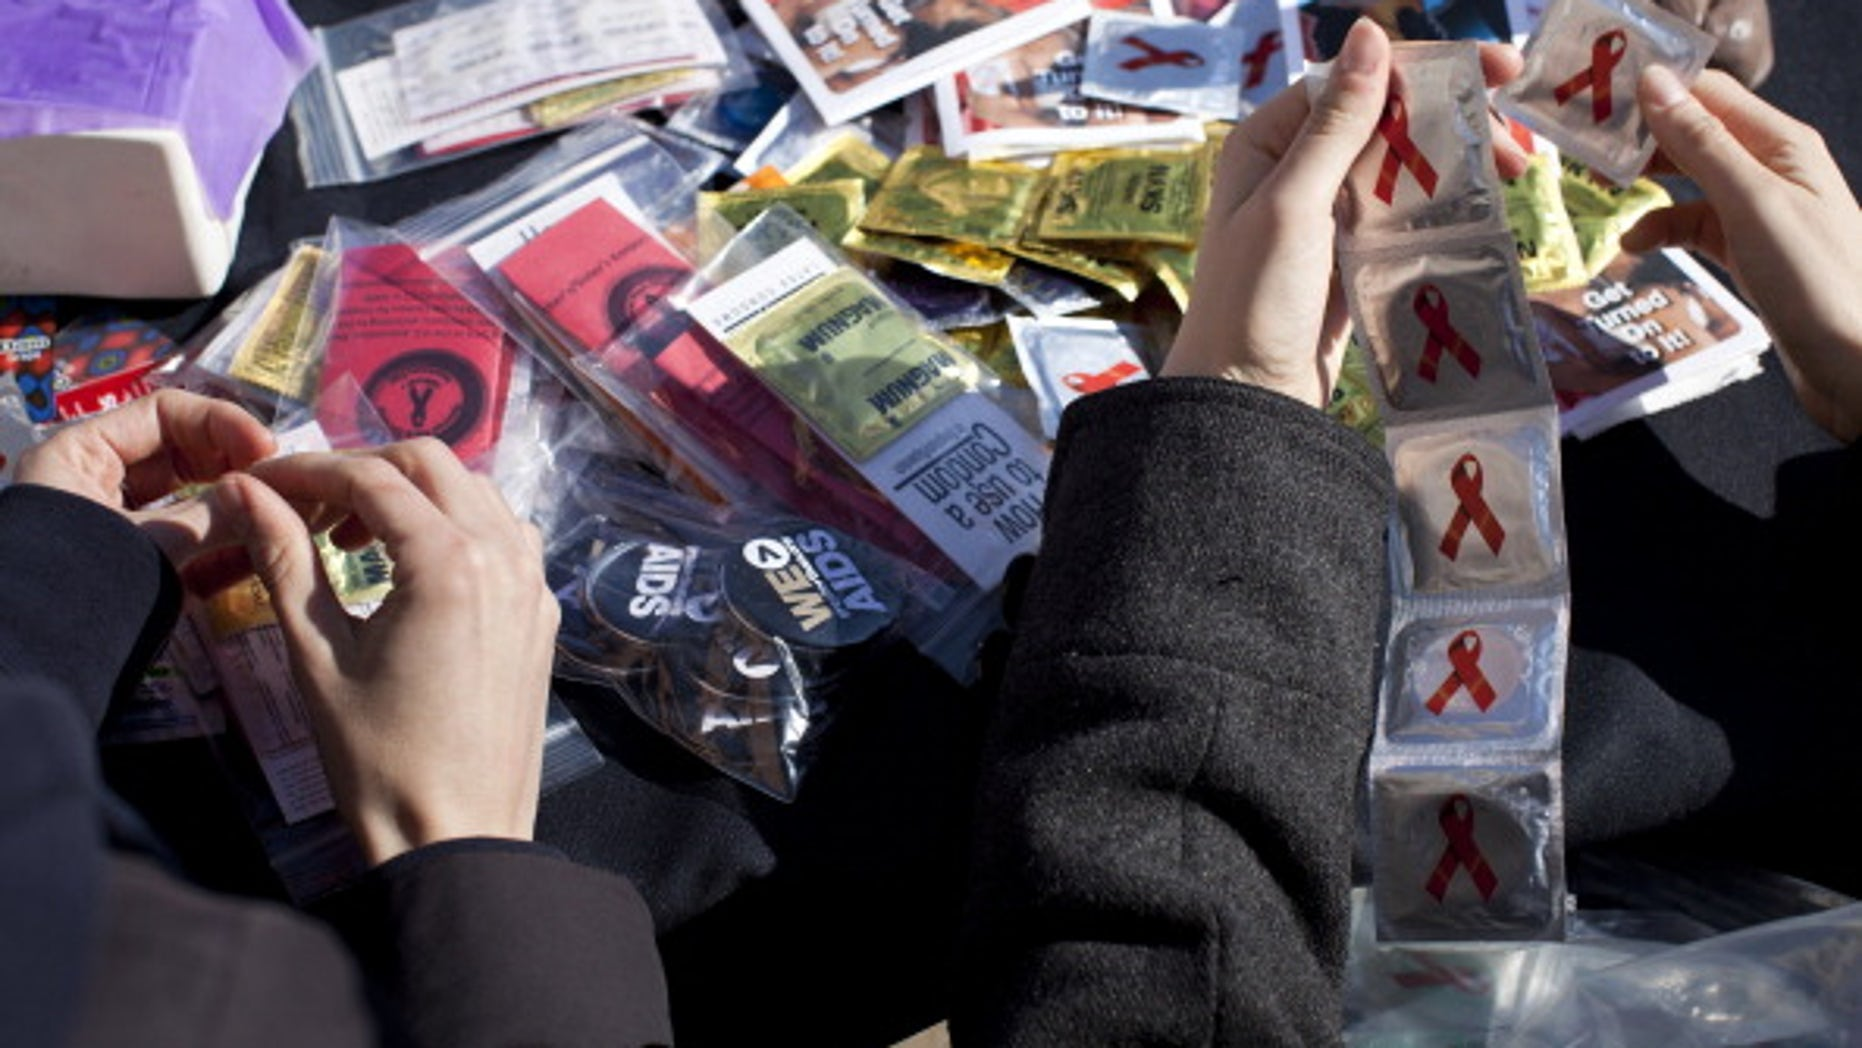 Volunteers separate condoms to give away during a free HIV testing event .